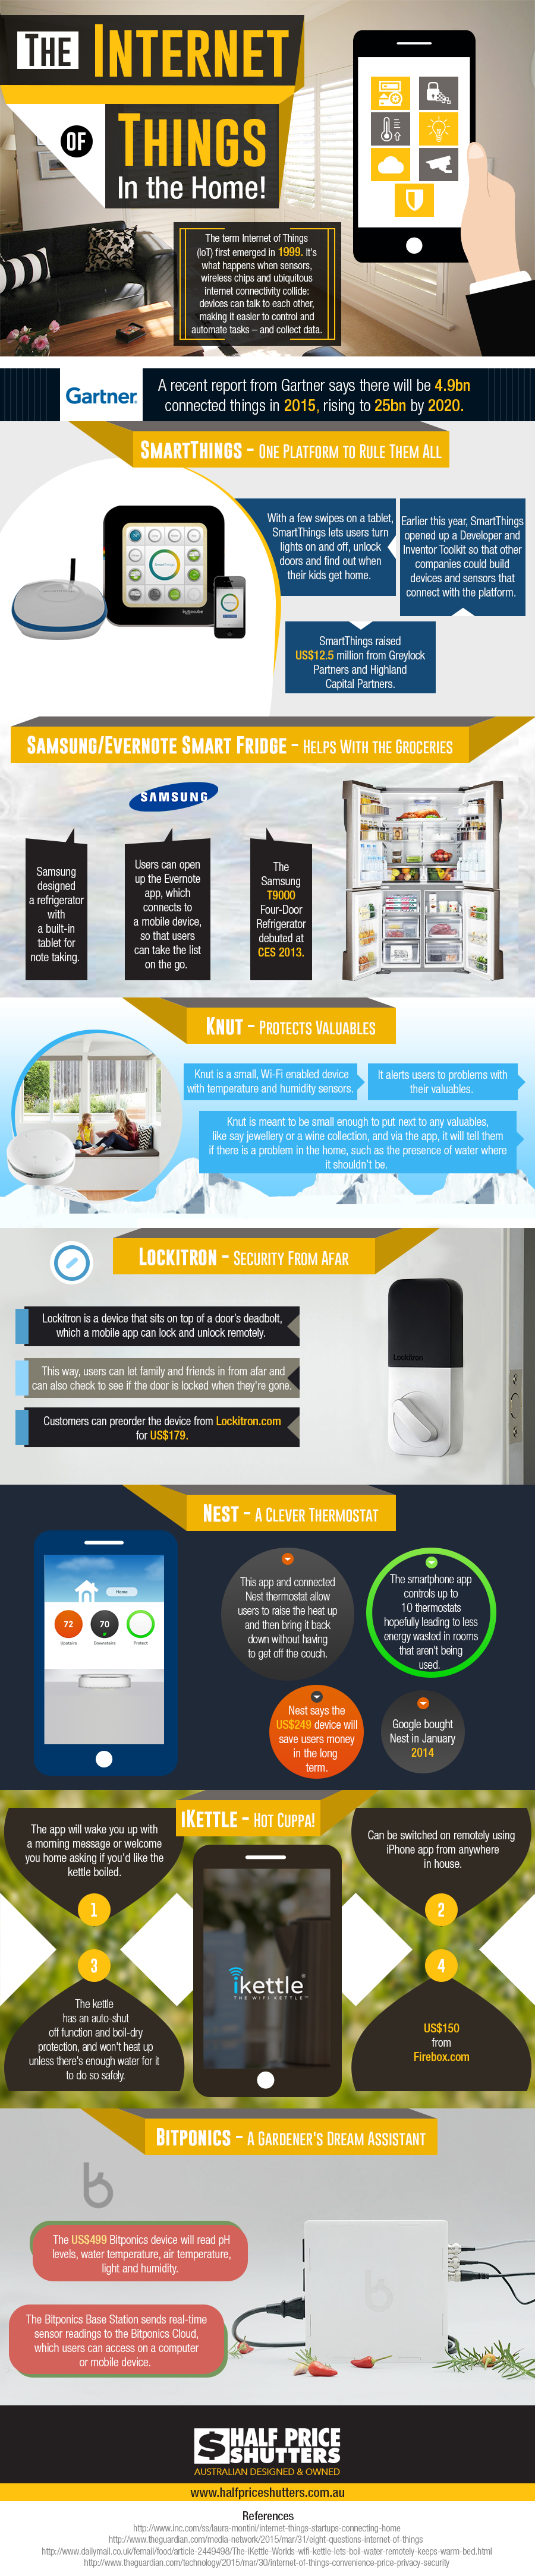 Internet-of-Things-Home-An-Info-graphic